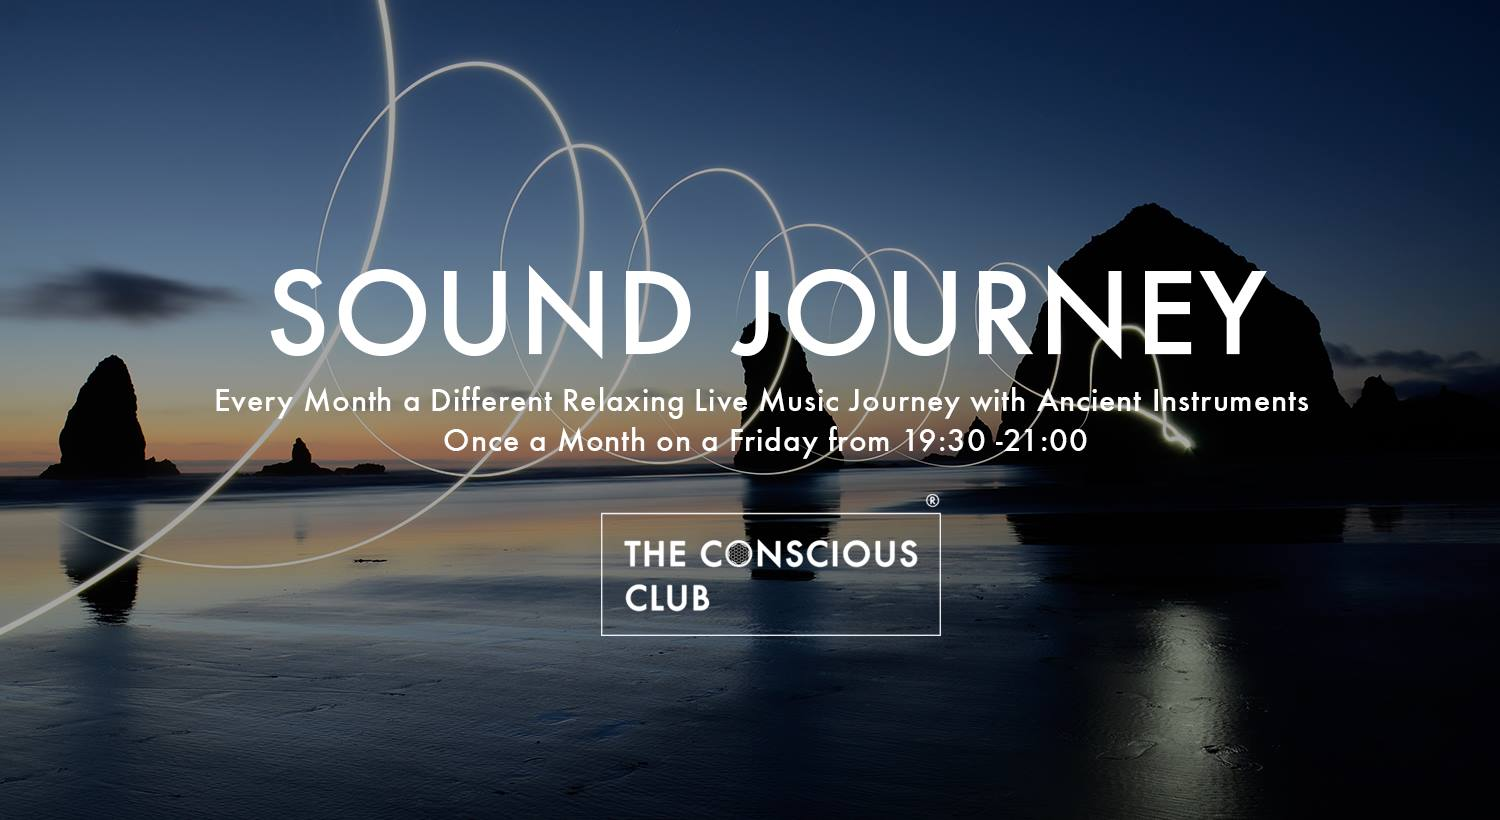 We have invited  Eline Louise ,  Thomas Kwakernaat  and  Ton Akkermans  &  Carolina Schomper  to take you on unique journeys to surrender to the harmonic vibrations of the music while restoring your body, mind, and spirit.